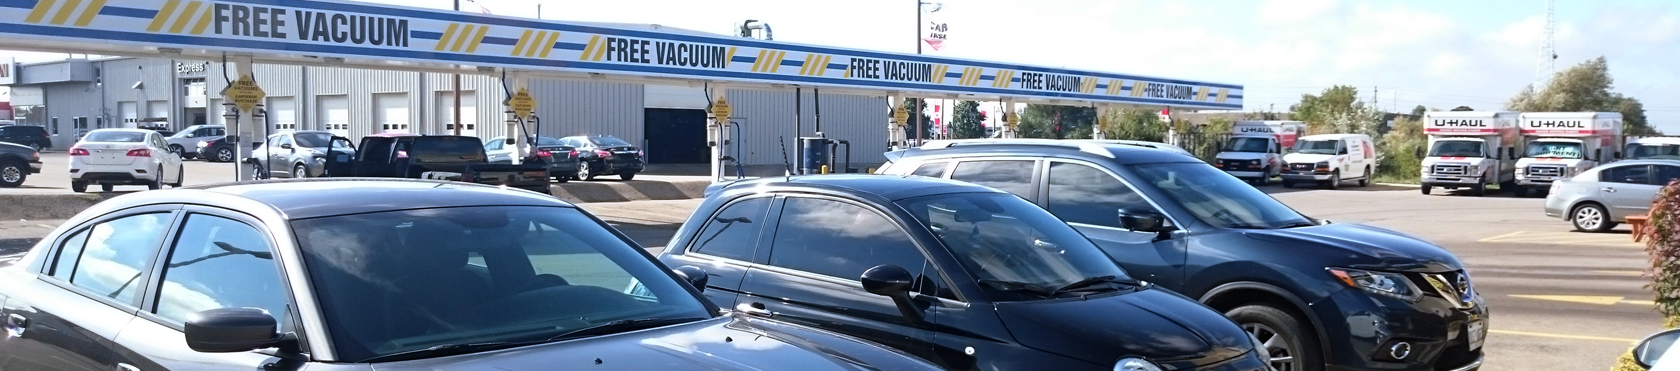 car wash deals in mississauga